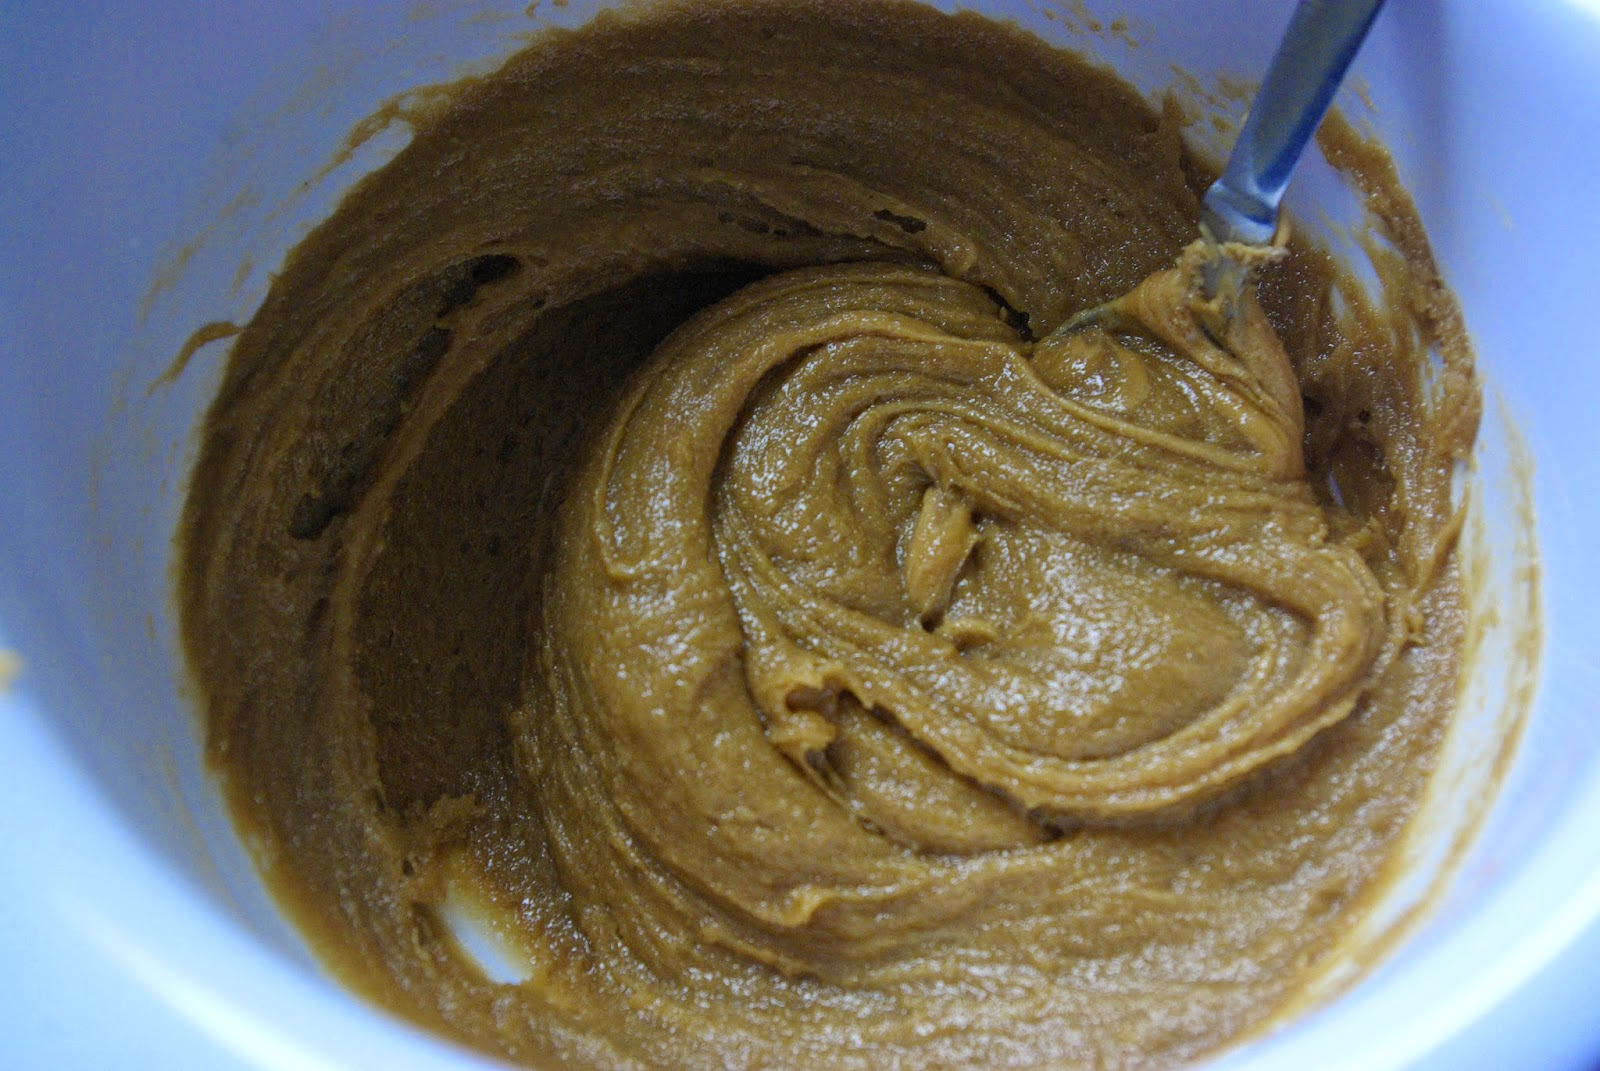 Flourless Peanut Butter Cookie Batter